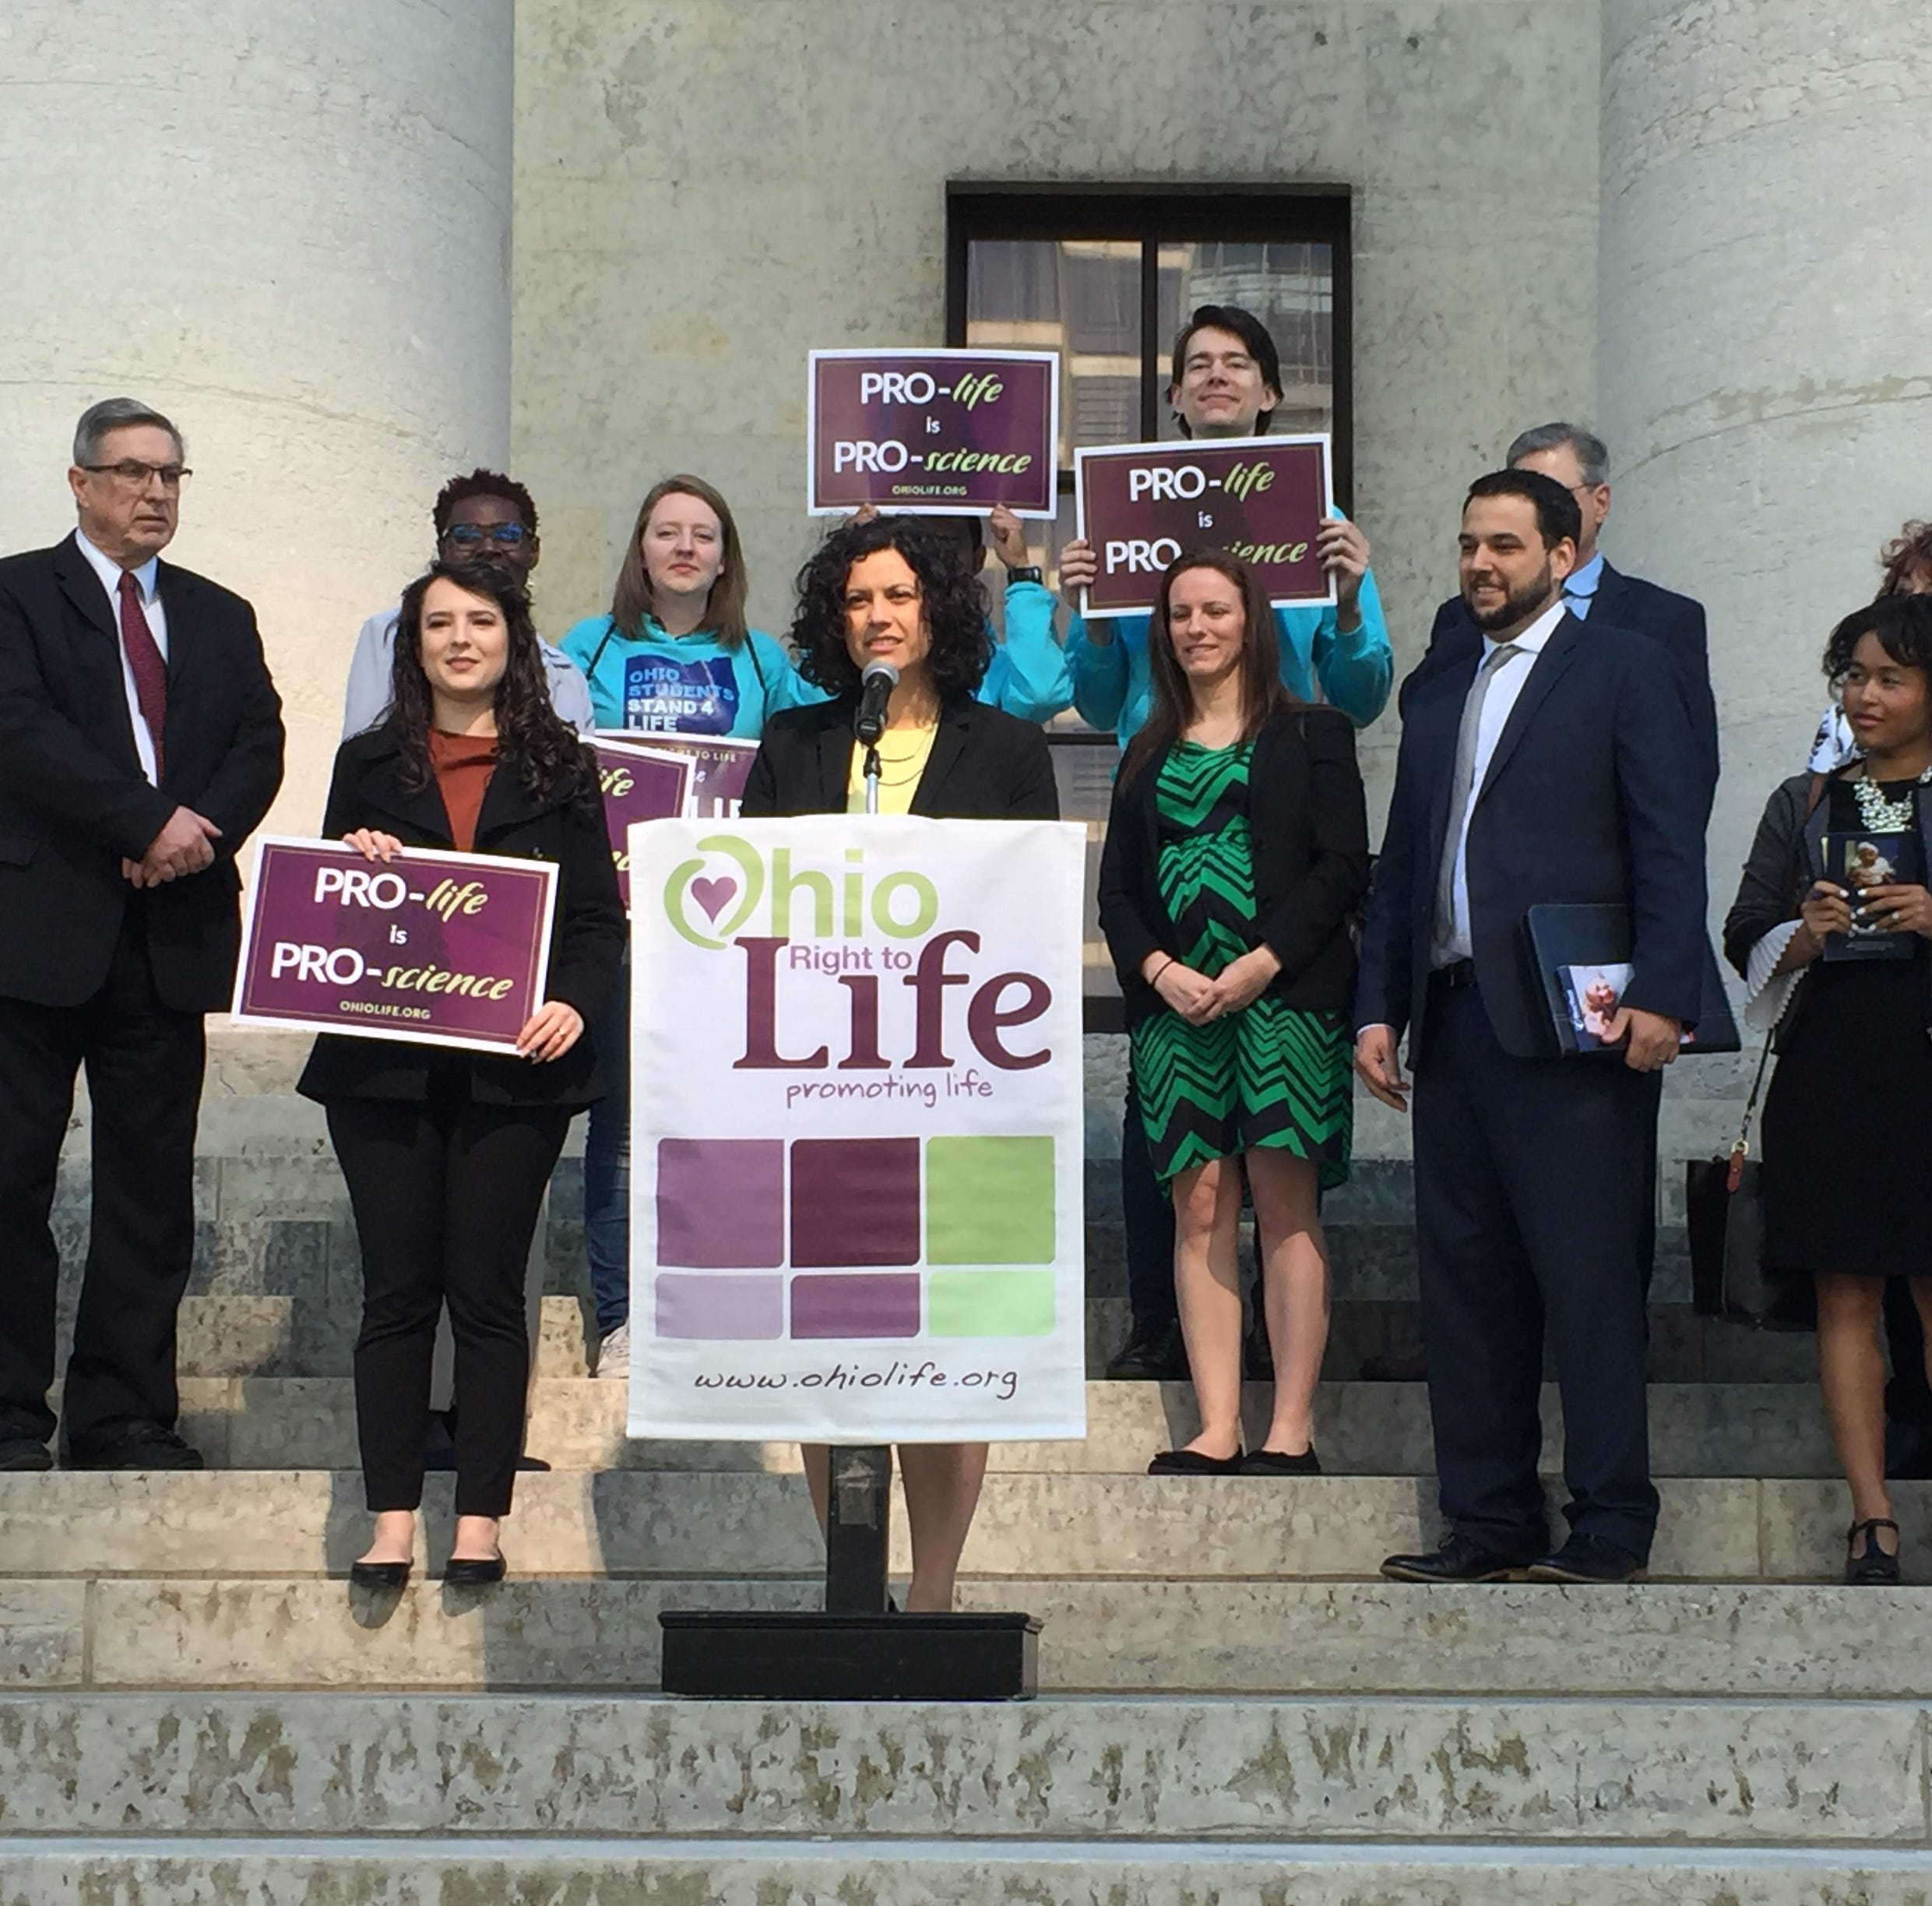 Ohio lawmakers want women to know about abortion 'reversal.' But the method is unproven.